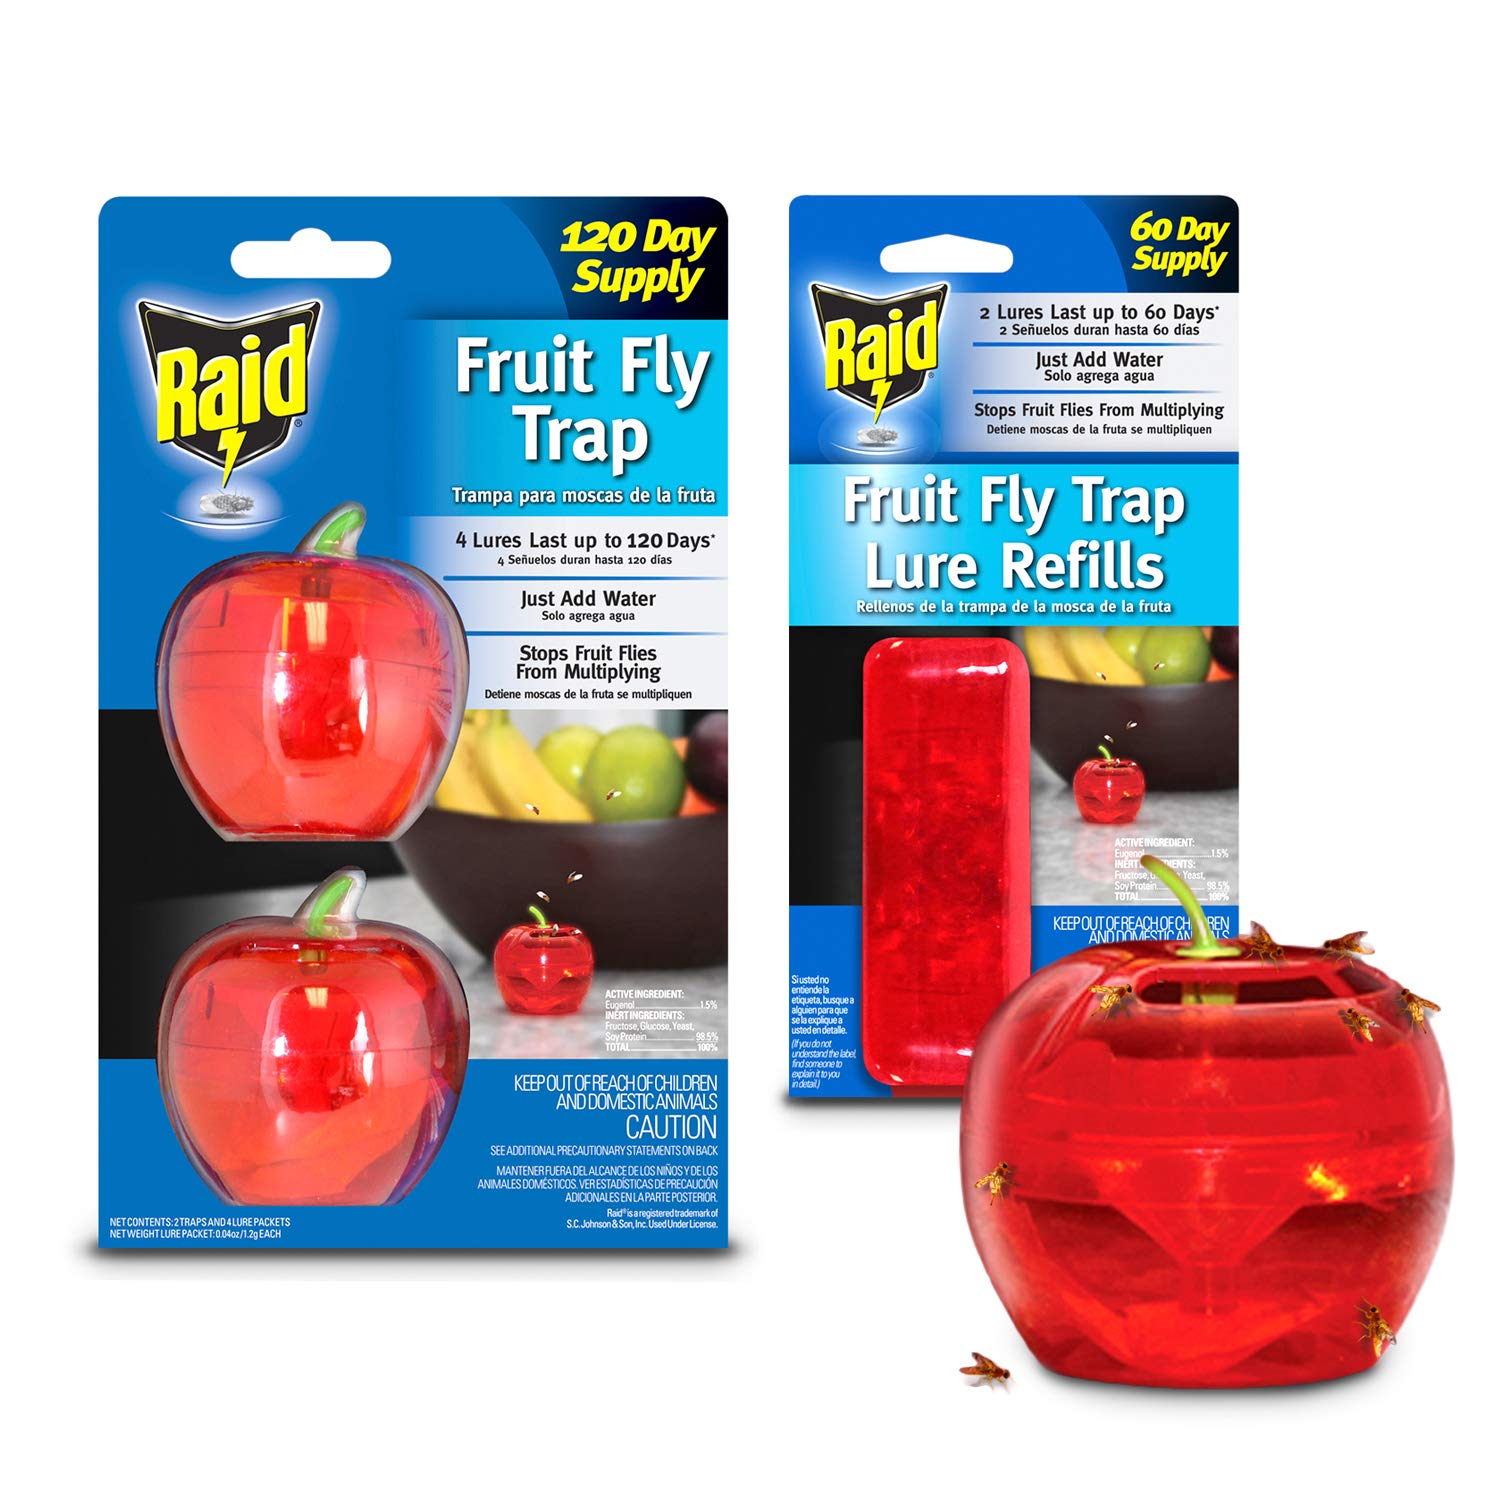 Raid Fruit Fly Trap (2-Pack) + Refill Bundle, 180-day Supply of Fruit Fly Traps, Plastic Fruit Fly Catcher, Reusable Gnat Trap, Non Toxic Insect Killer Traps w/Bonus Food-Based Fruit Fly Lure Refills by Raid